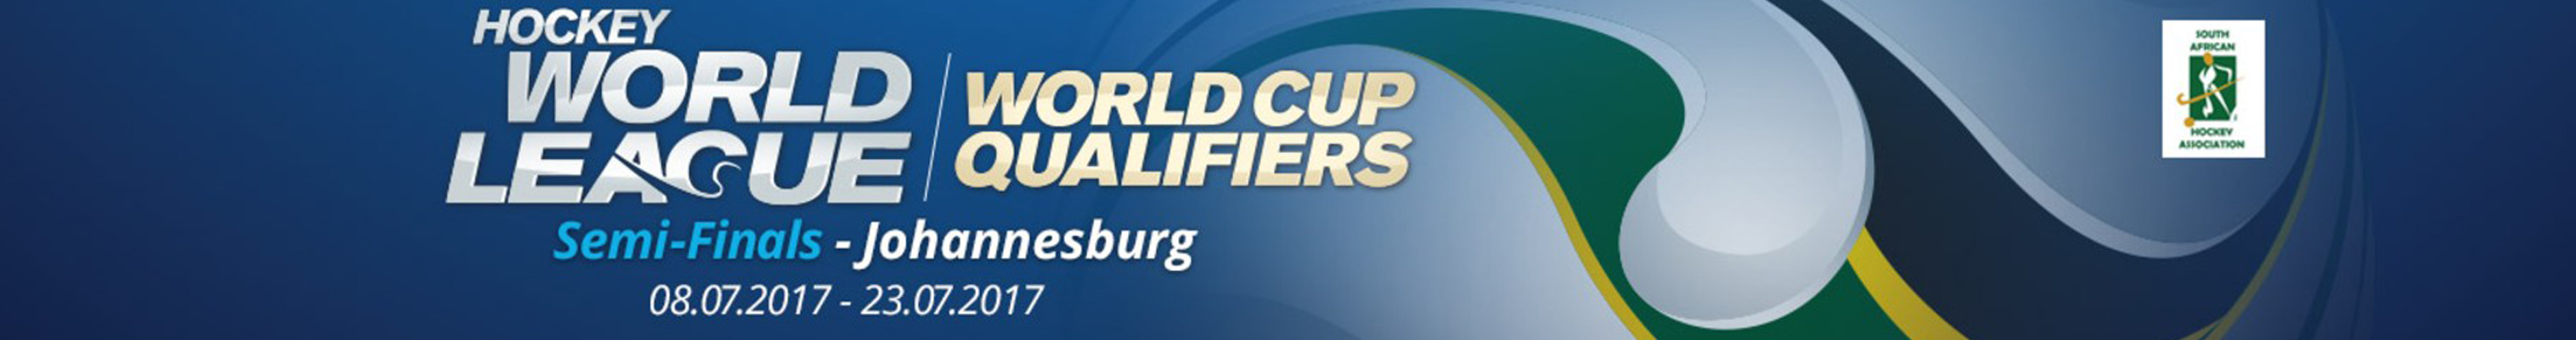 Hockey World League Semi-finals (Johannesburg)